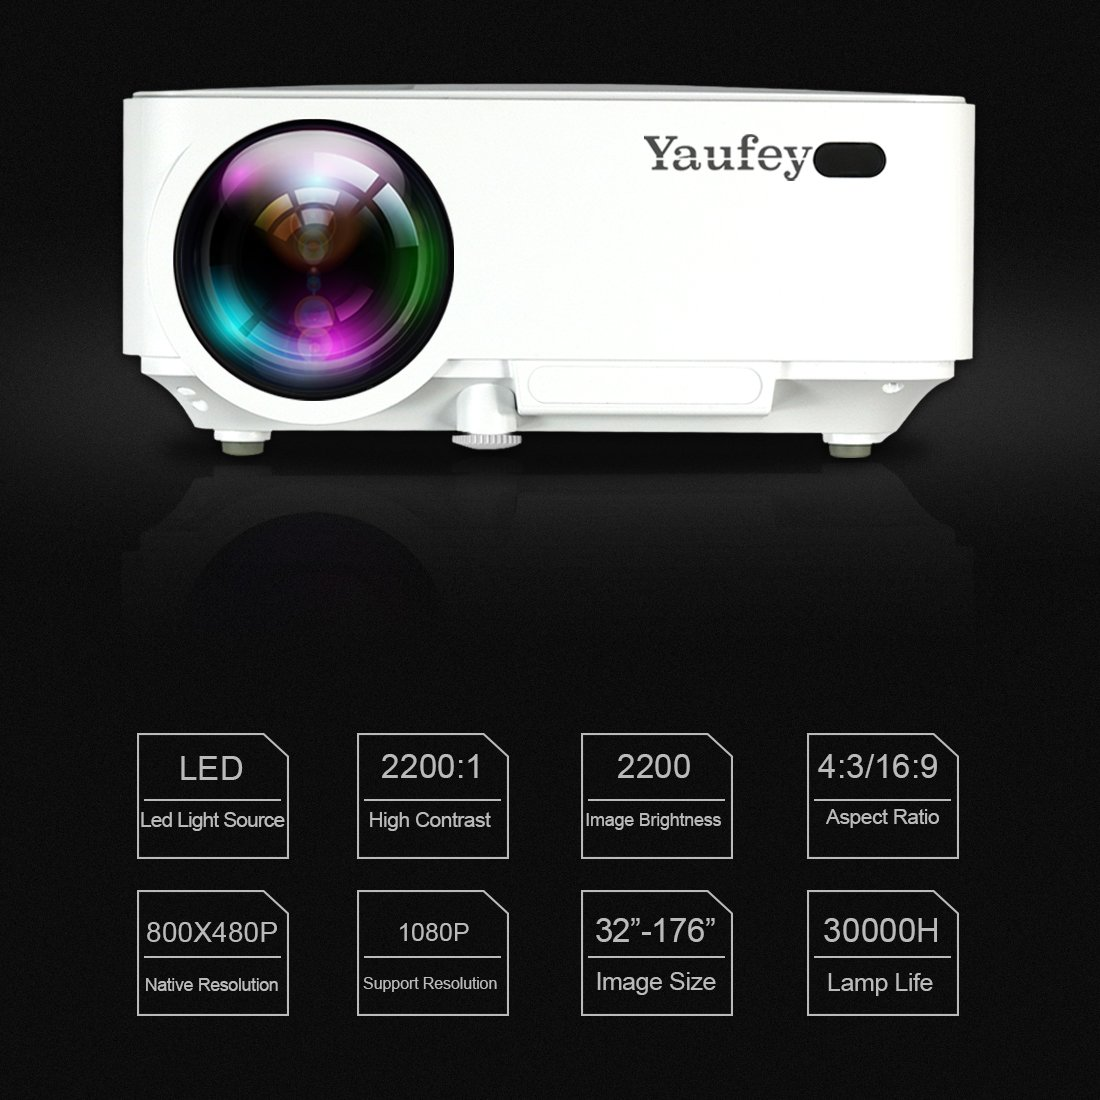 Laptop Projector, Yaufey Digital Video Projector Support 1080P for Home Cinema TV Laptop Game iPhone Android Smartphone with HDMI Cable (2018 Upgraded Version) by Yaufey (Image #4)